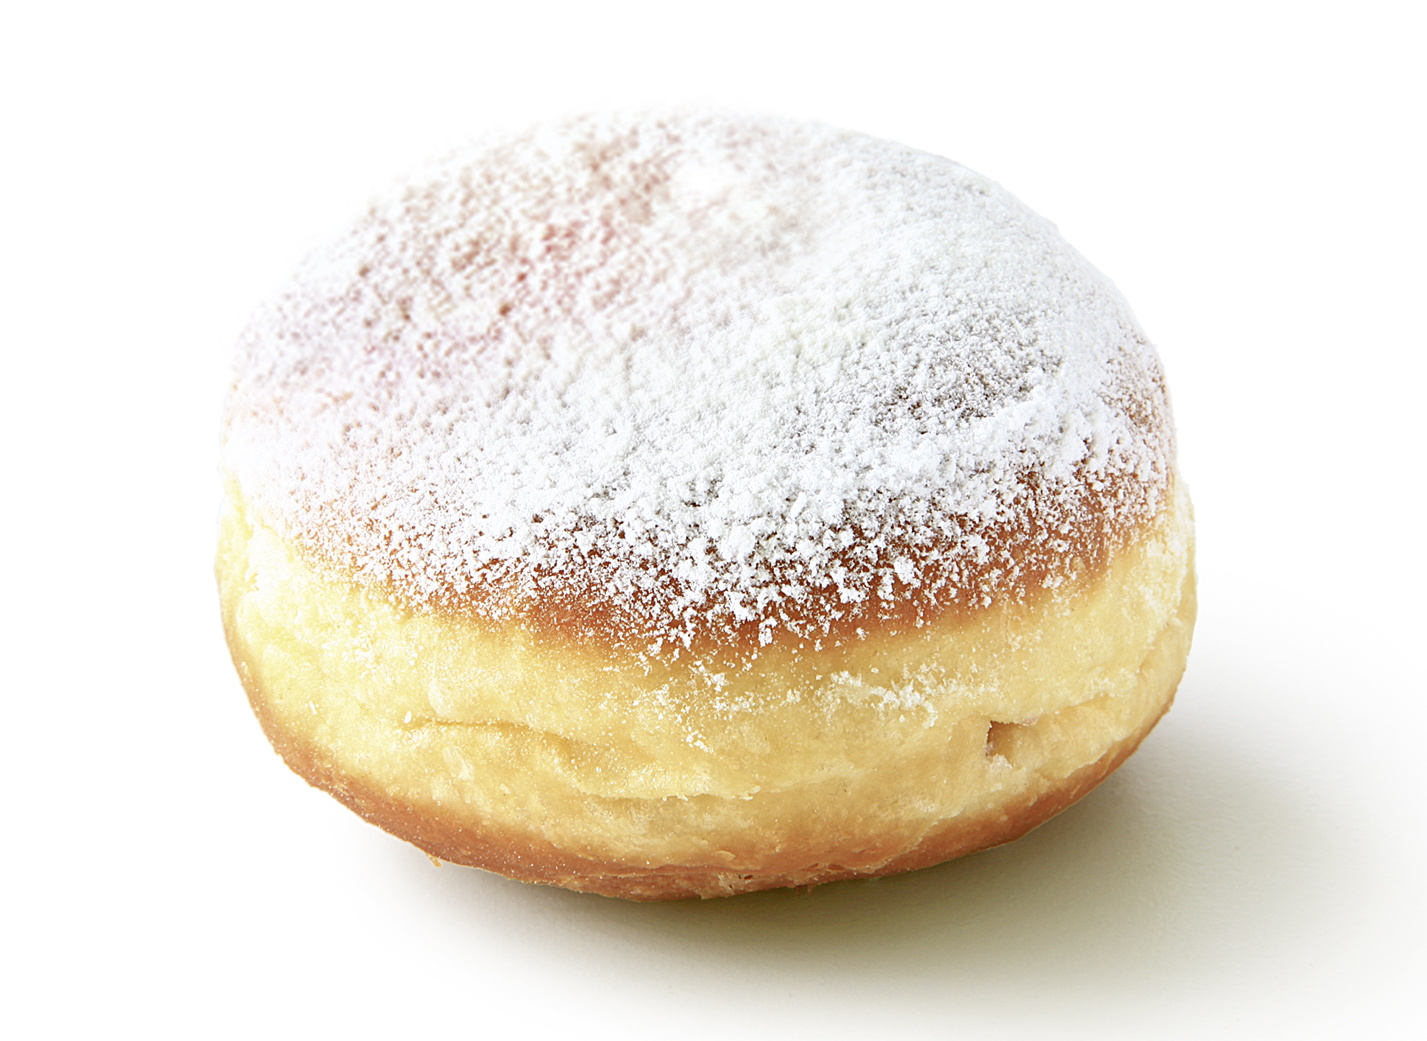 Jelly Dougnut, Multifruits, powdered - Pastry filled with multi fruit/ sprinkled with powdered sugar/ thaw only/ diameter: 9 cm